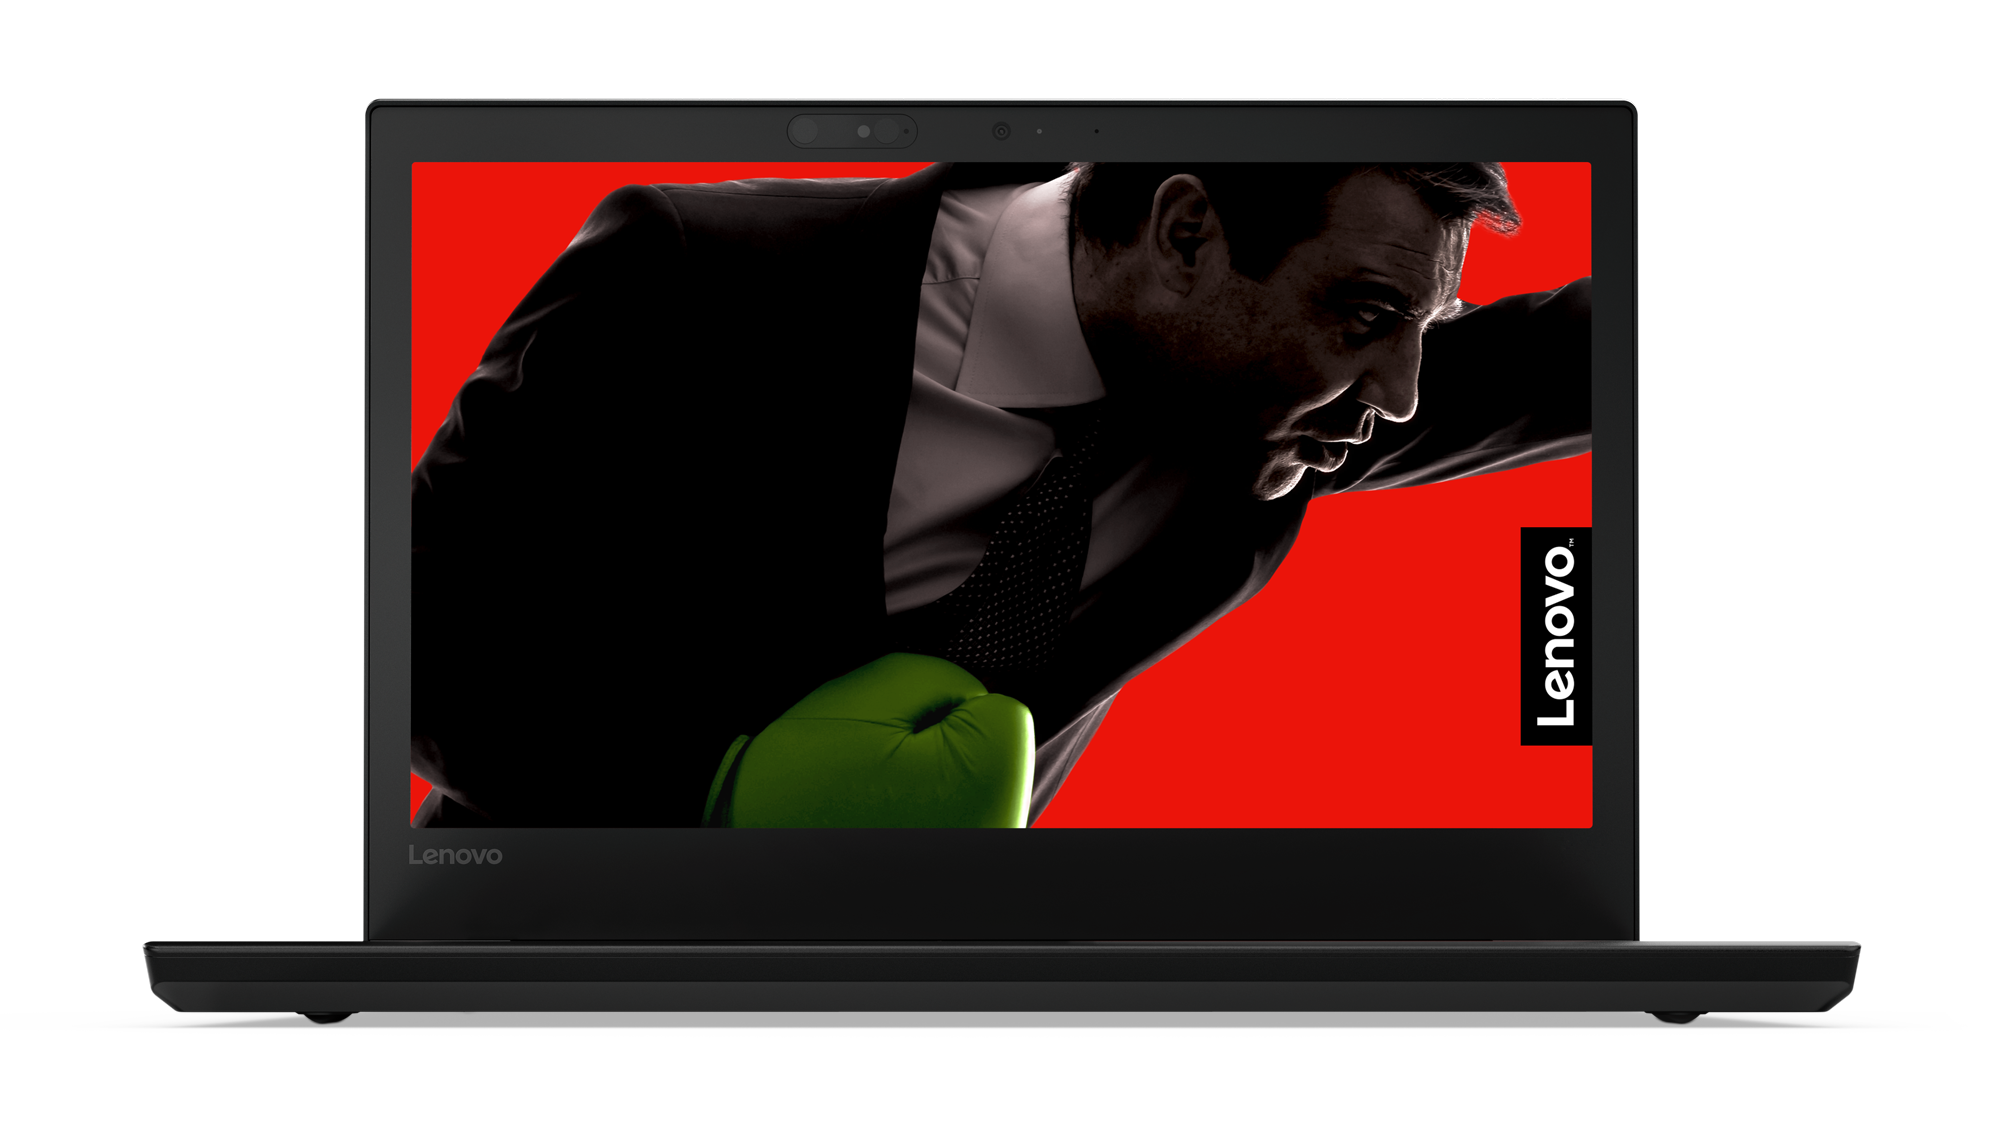 Lenovo ThinkPad Anniversary Edition laptop announced; starts at $1899